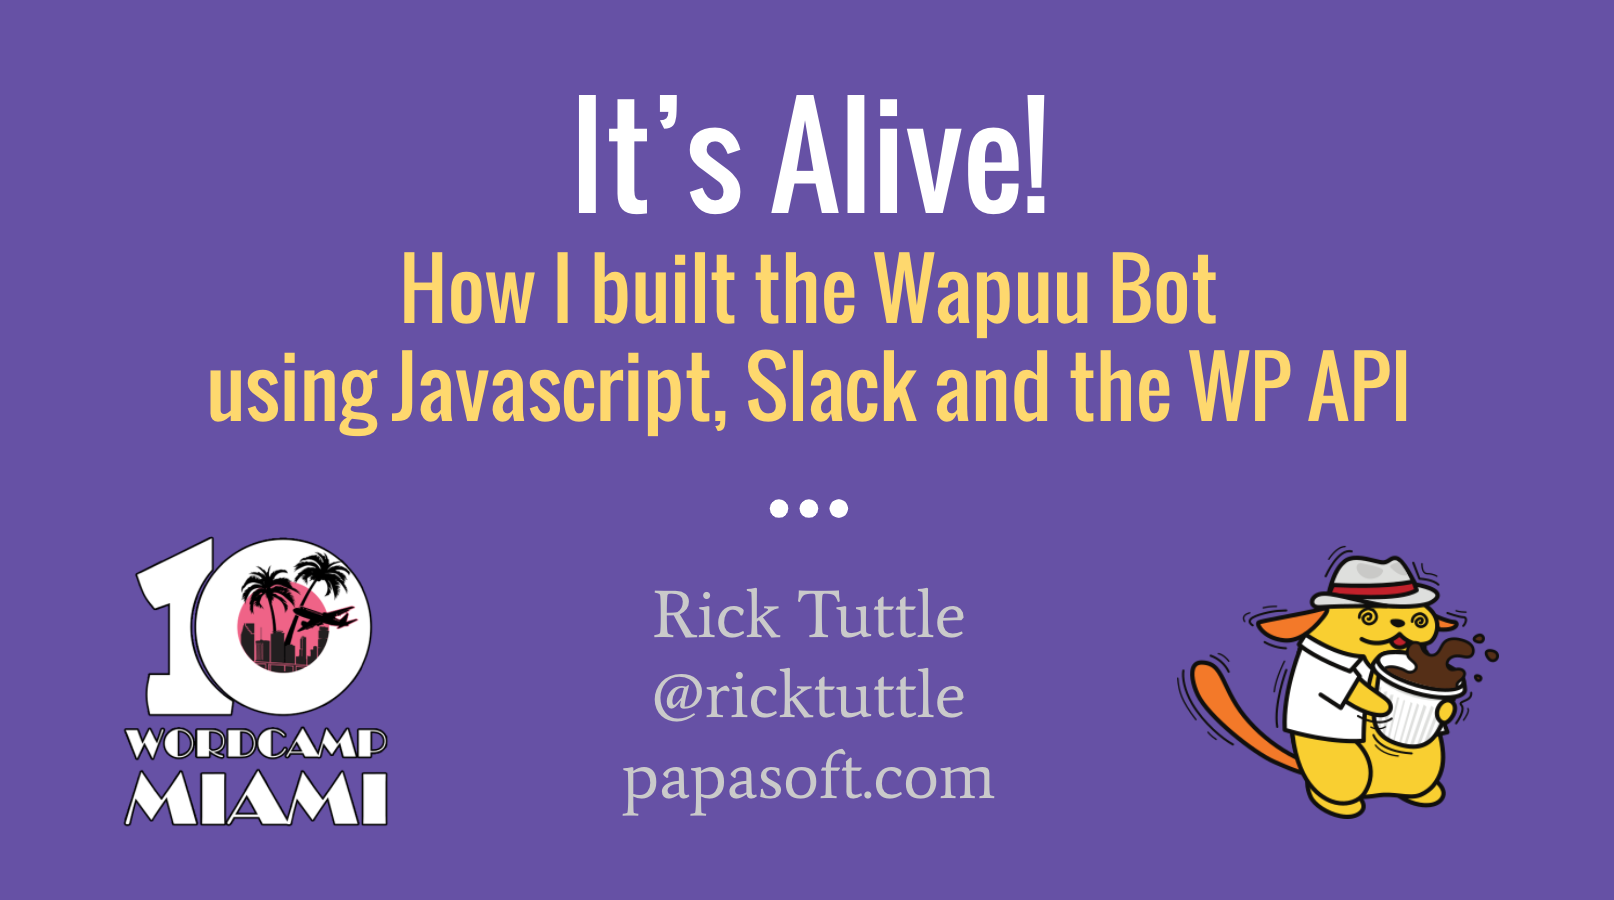 How I Built Wapuu Bot - Rick Tuttle